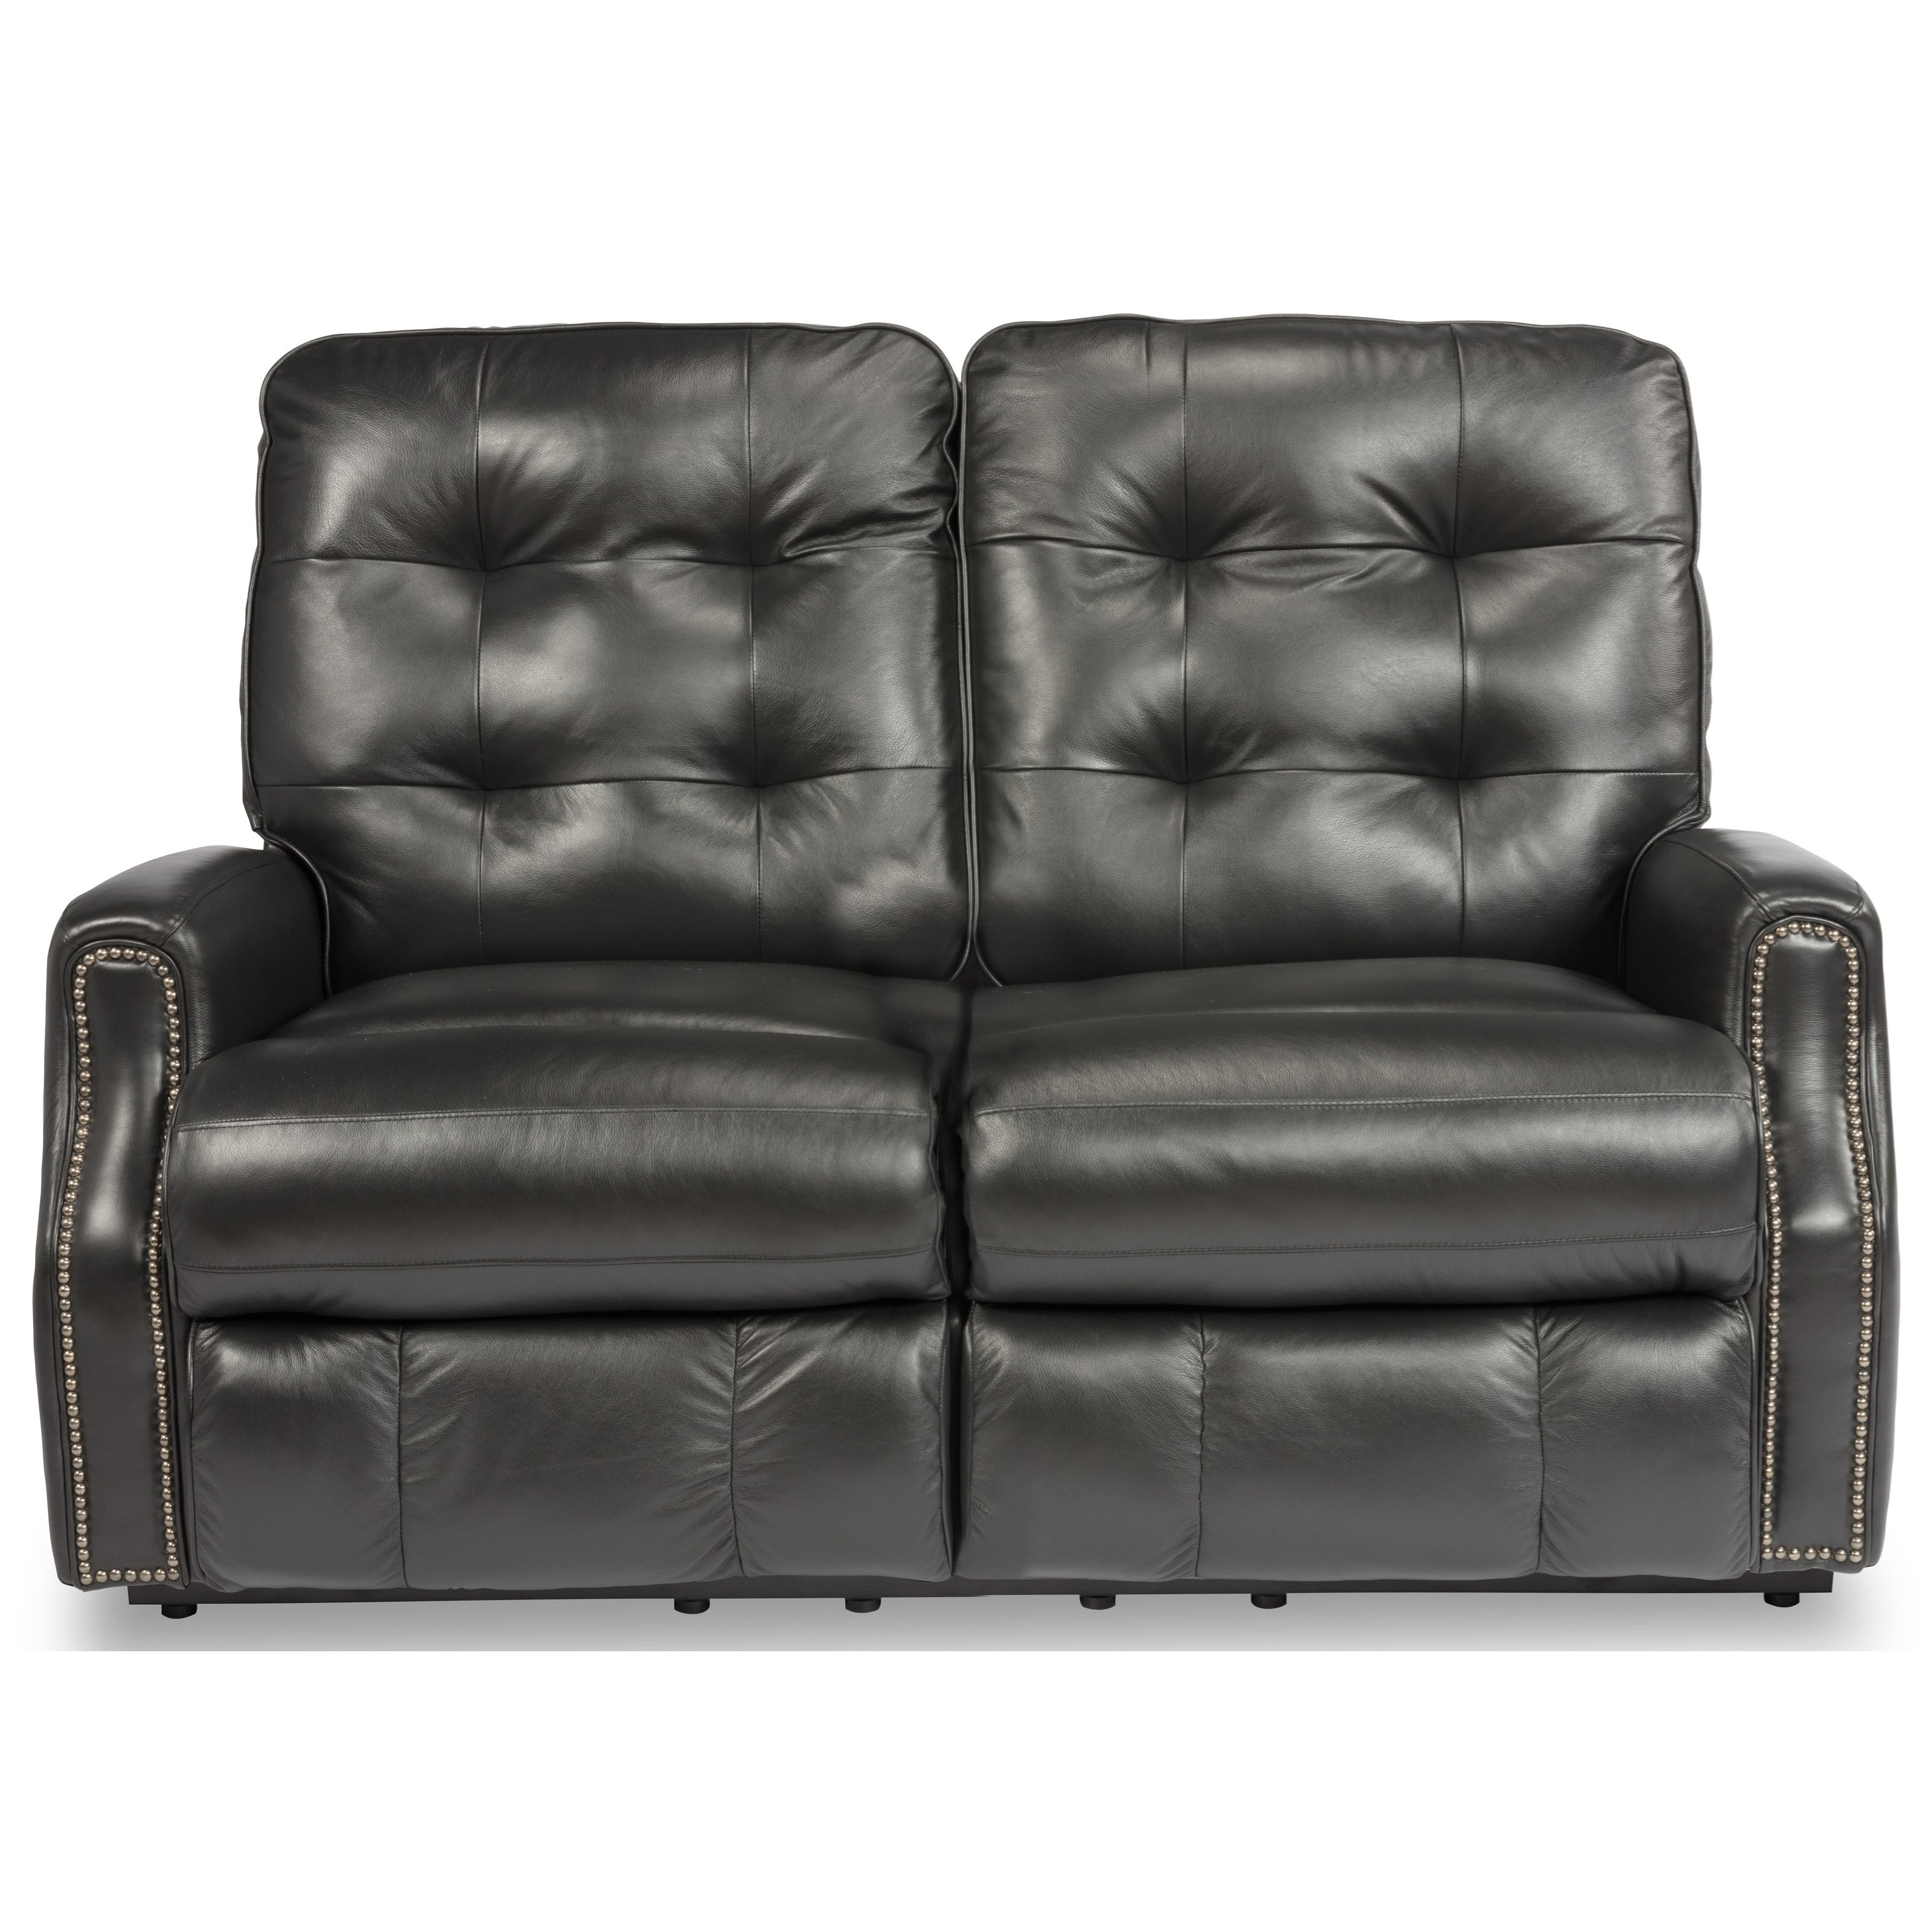 Devon Power Reclining Loveseat by Flexsteel at Rooms and Rest